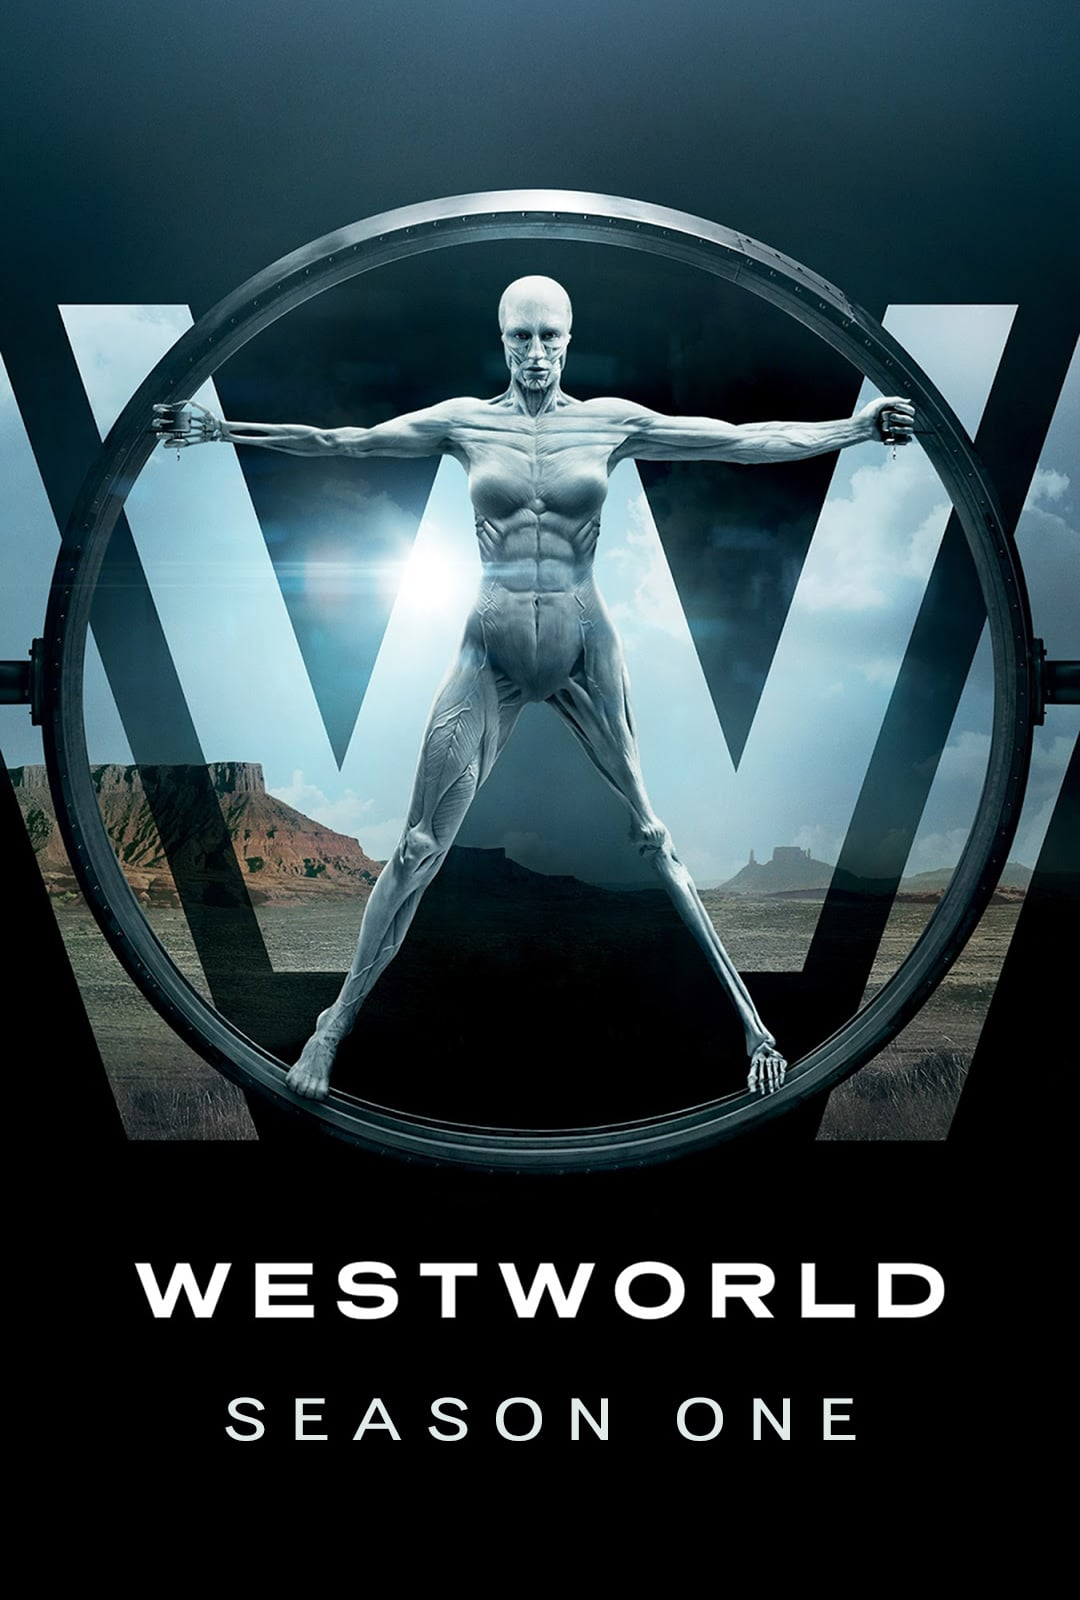 Westworld Season 1 (2016) Episode 1-10 End